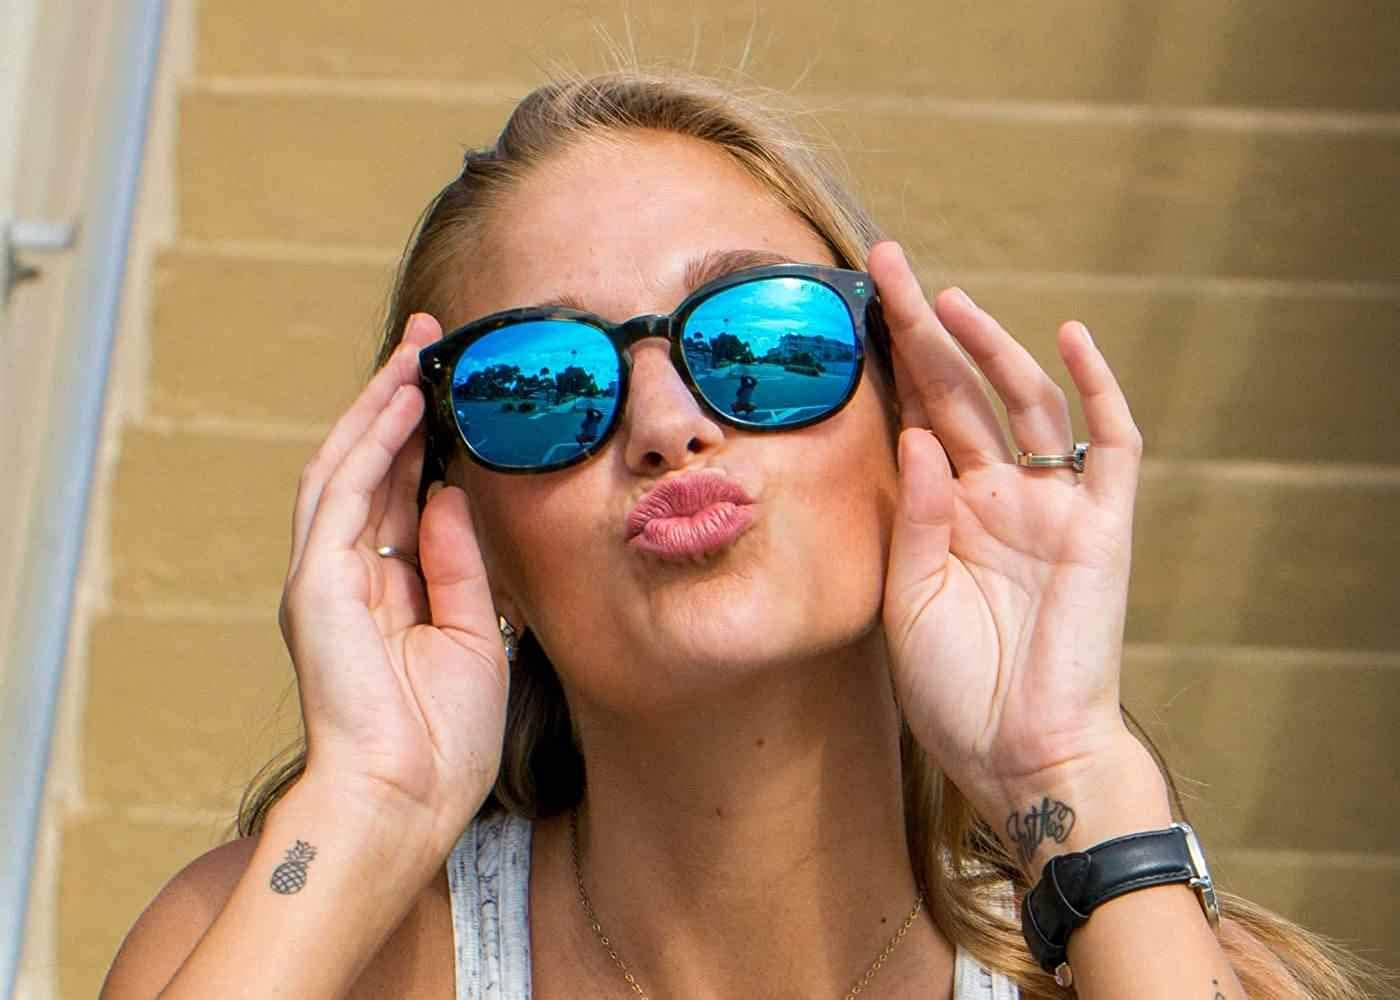 Plus Replacement Lenses for Snapchat Spectacles Fuse Lenses Fuse